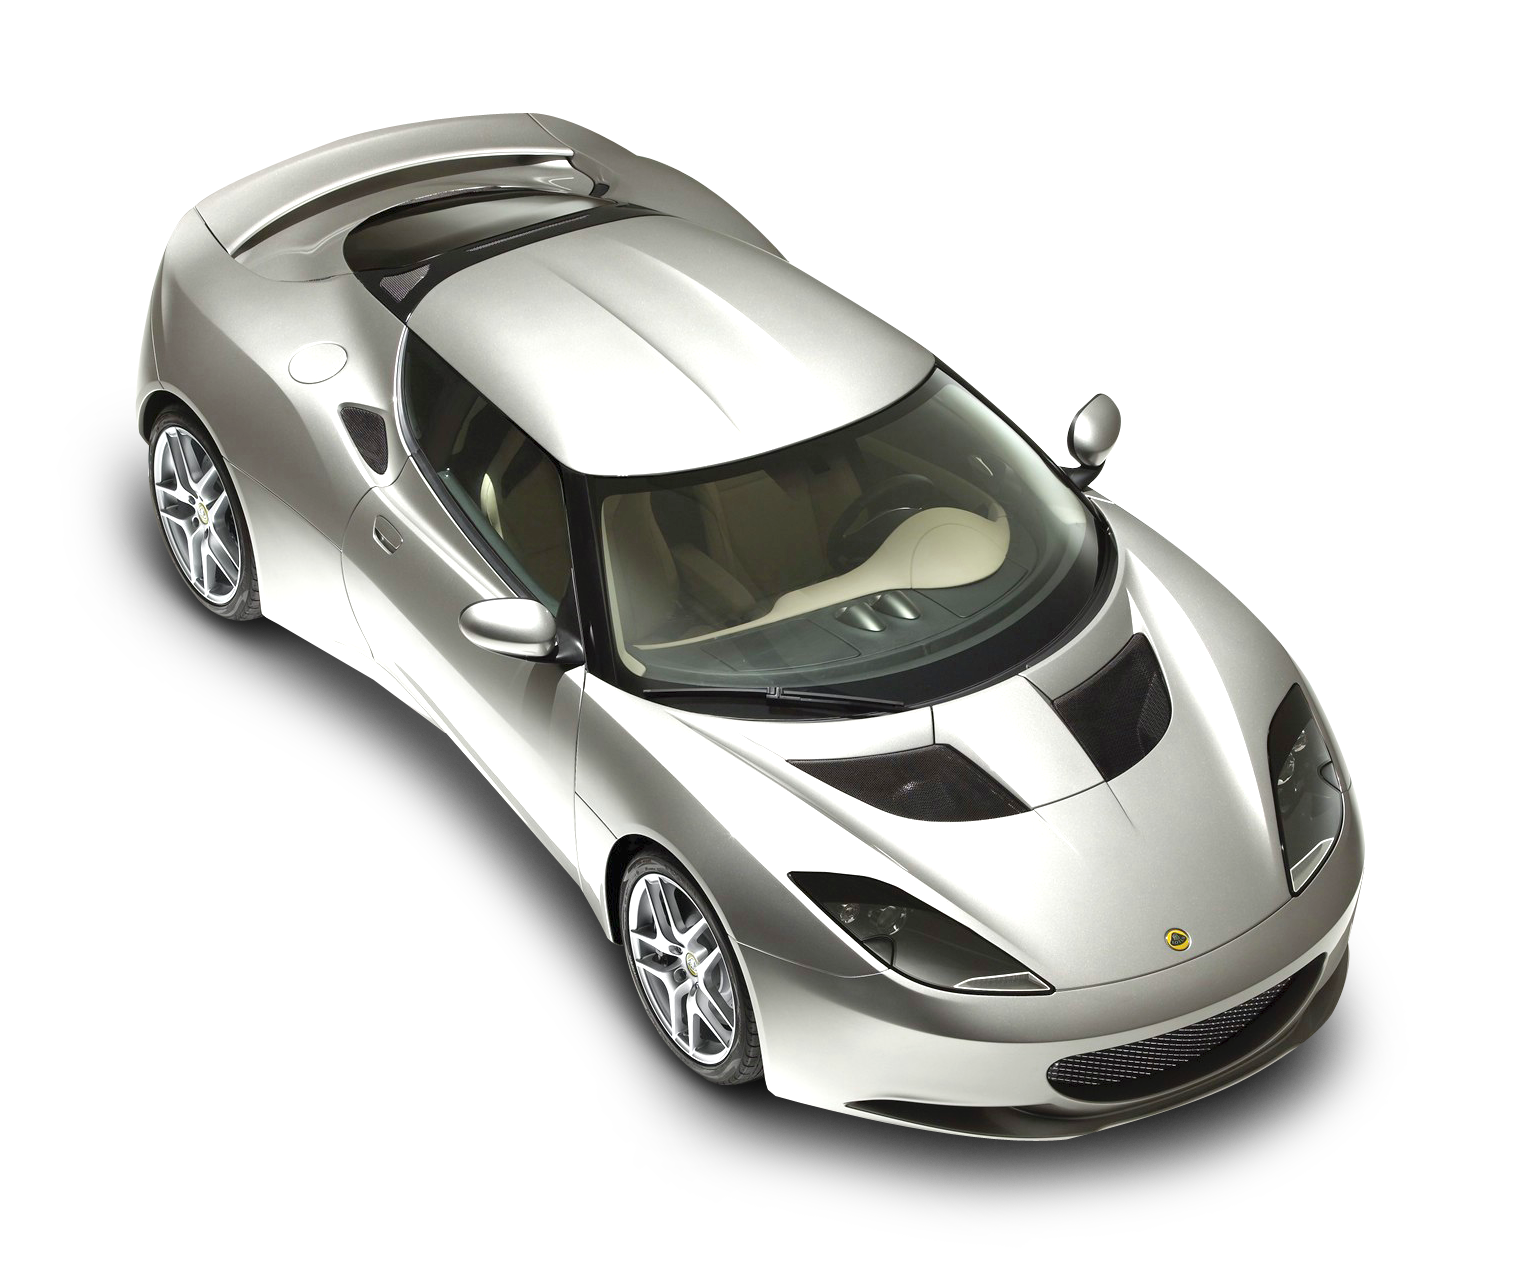 Pin By Charudeal On 졸작 Car Evora Top View